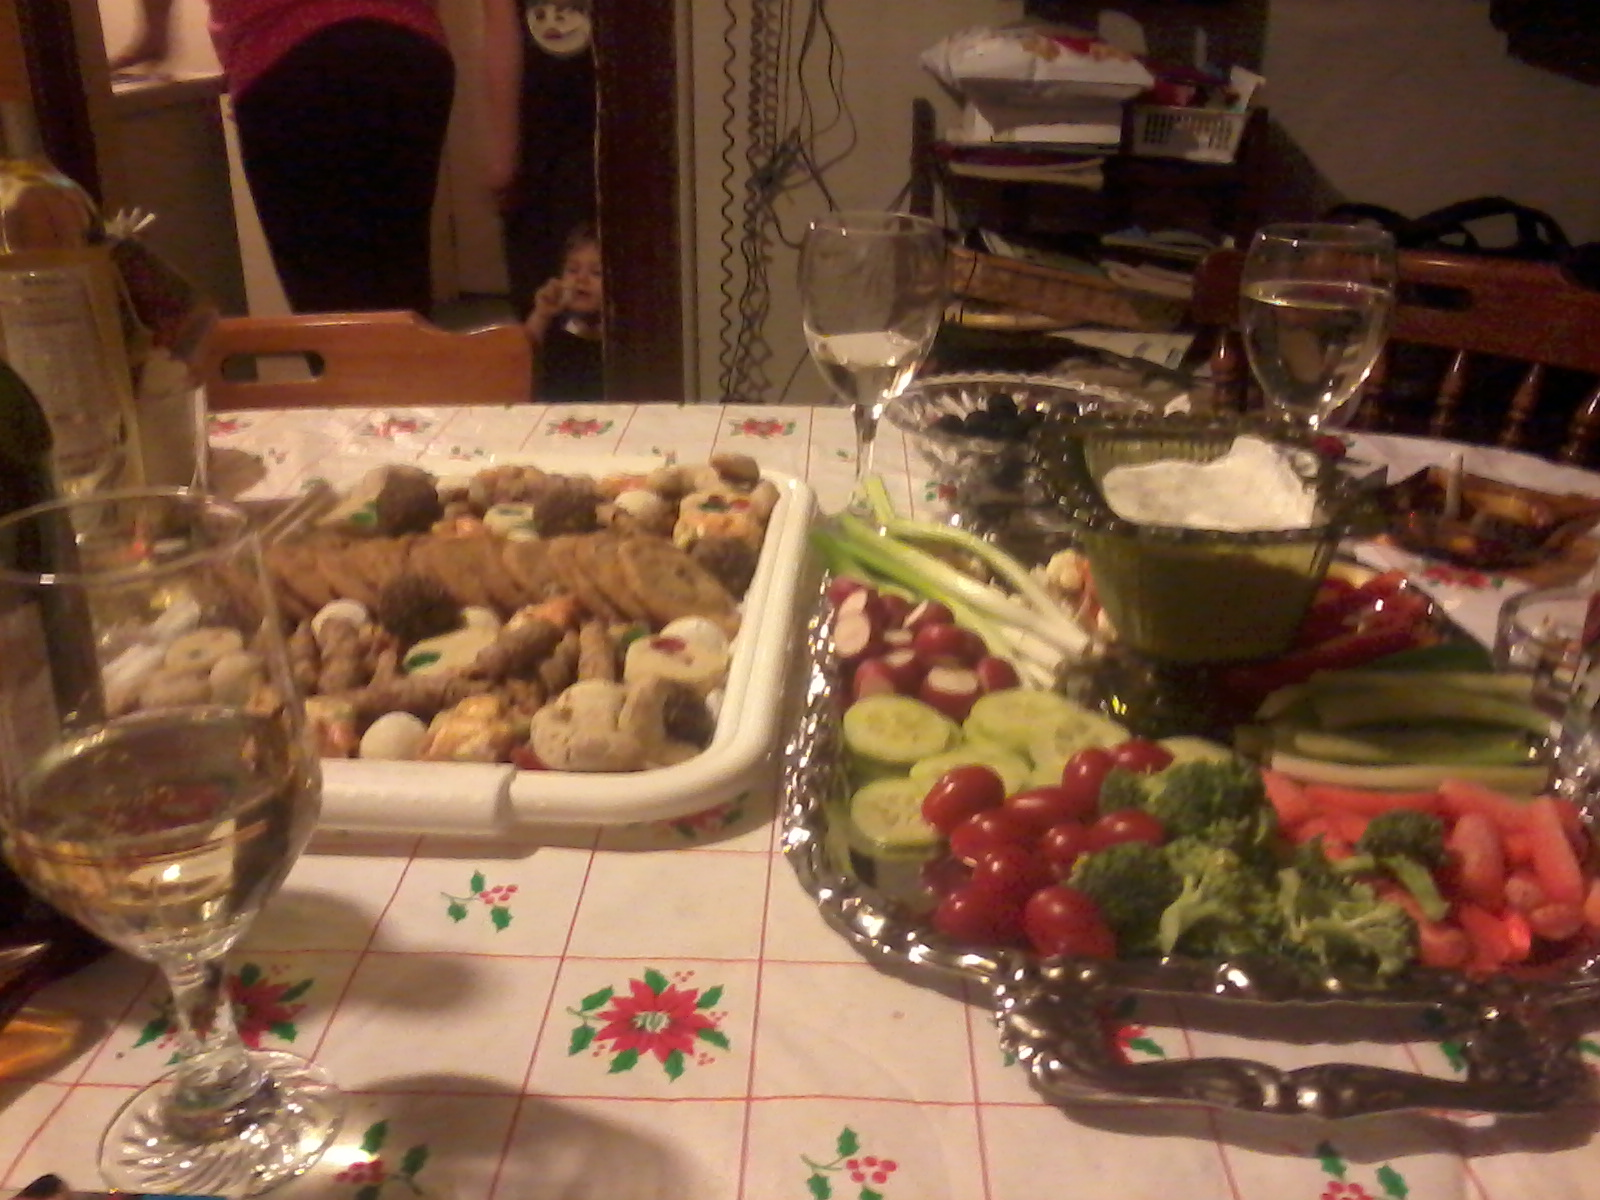 Christmas baking/cookies is on one tray; veges and dip are on another. You can't say we didn't have a choice!